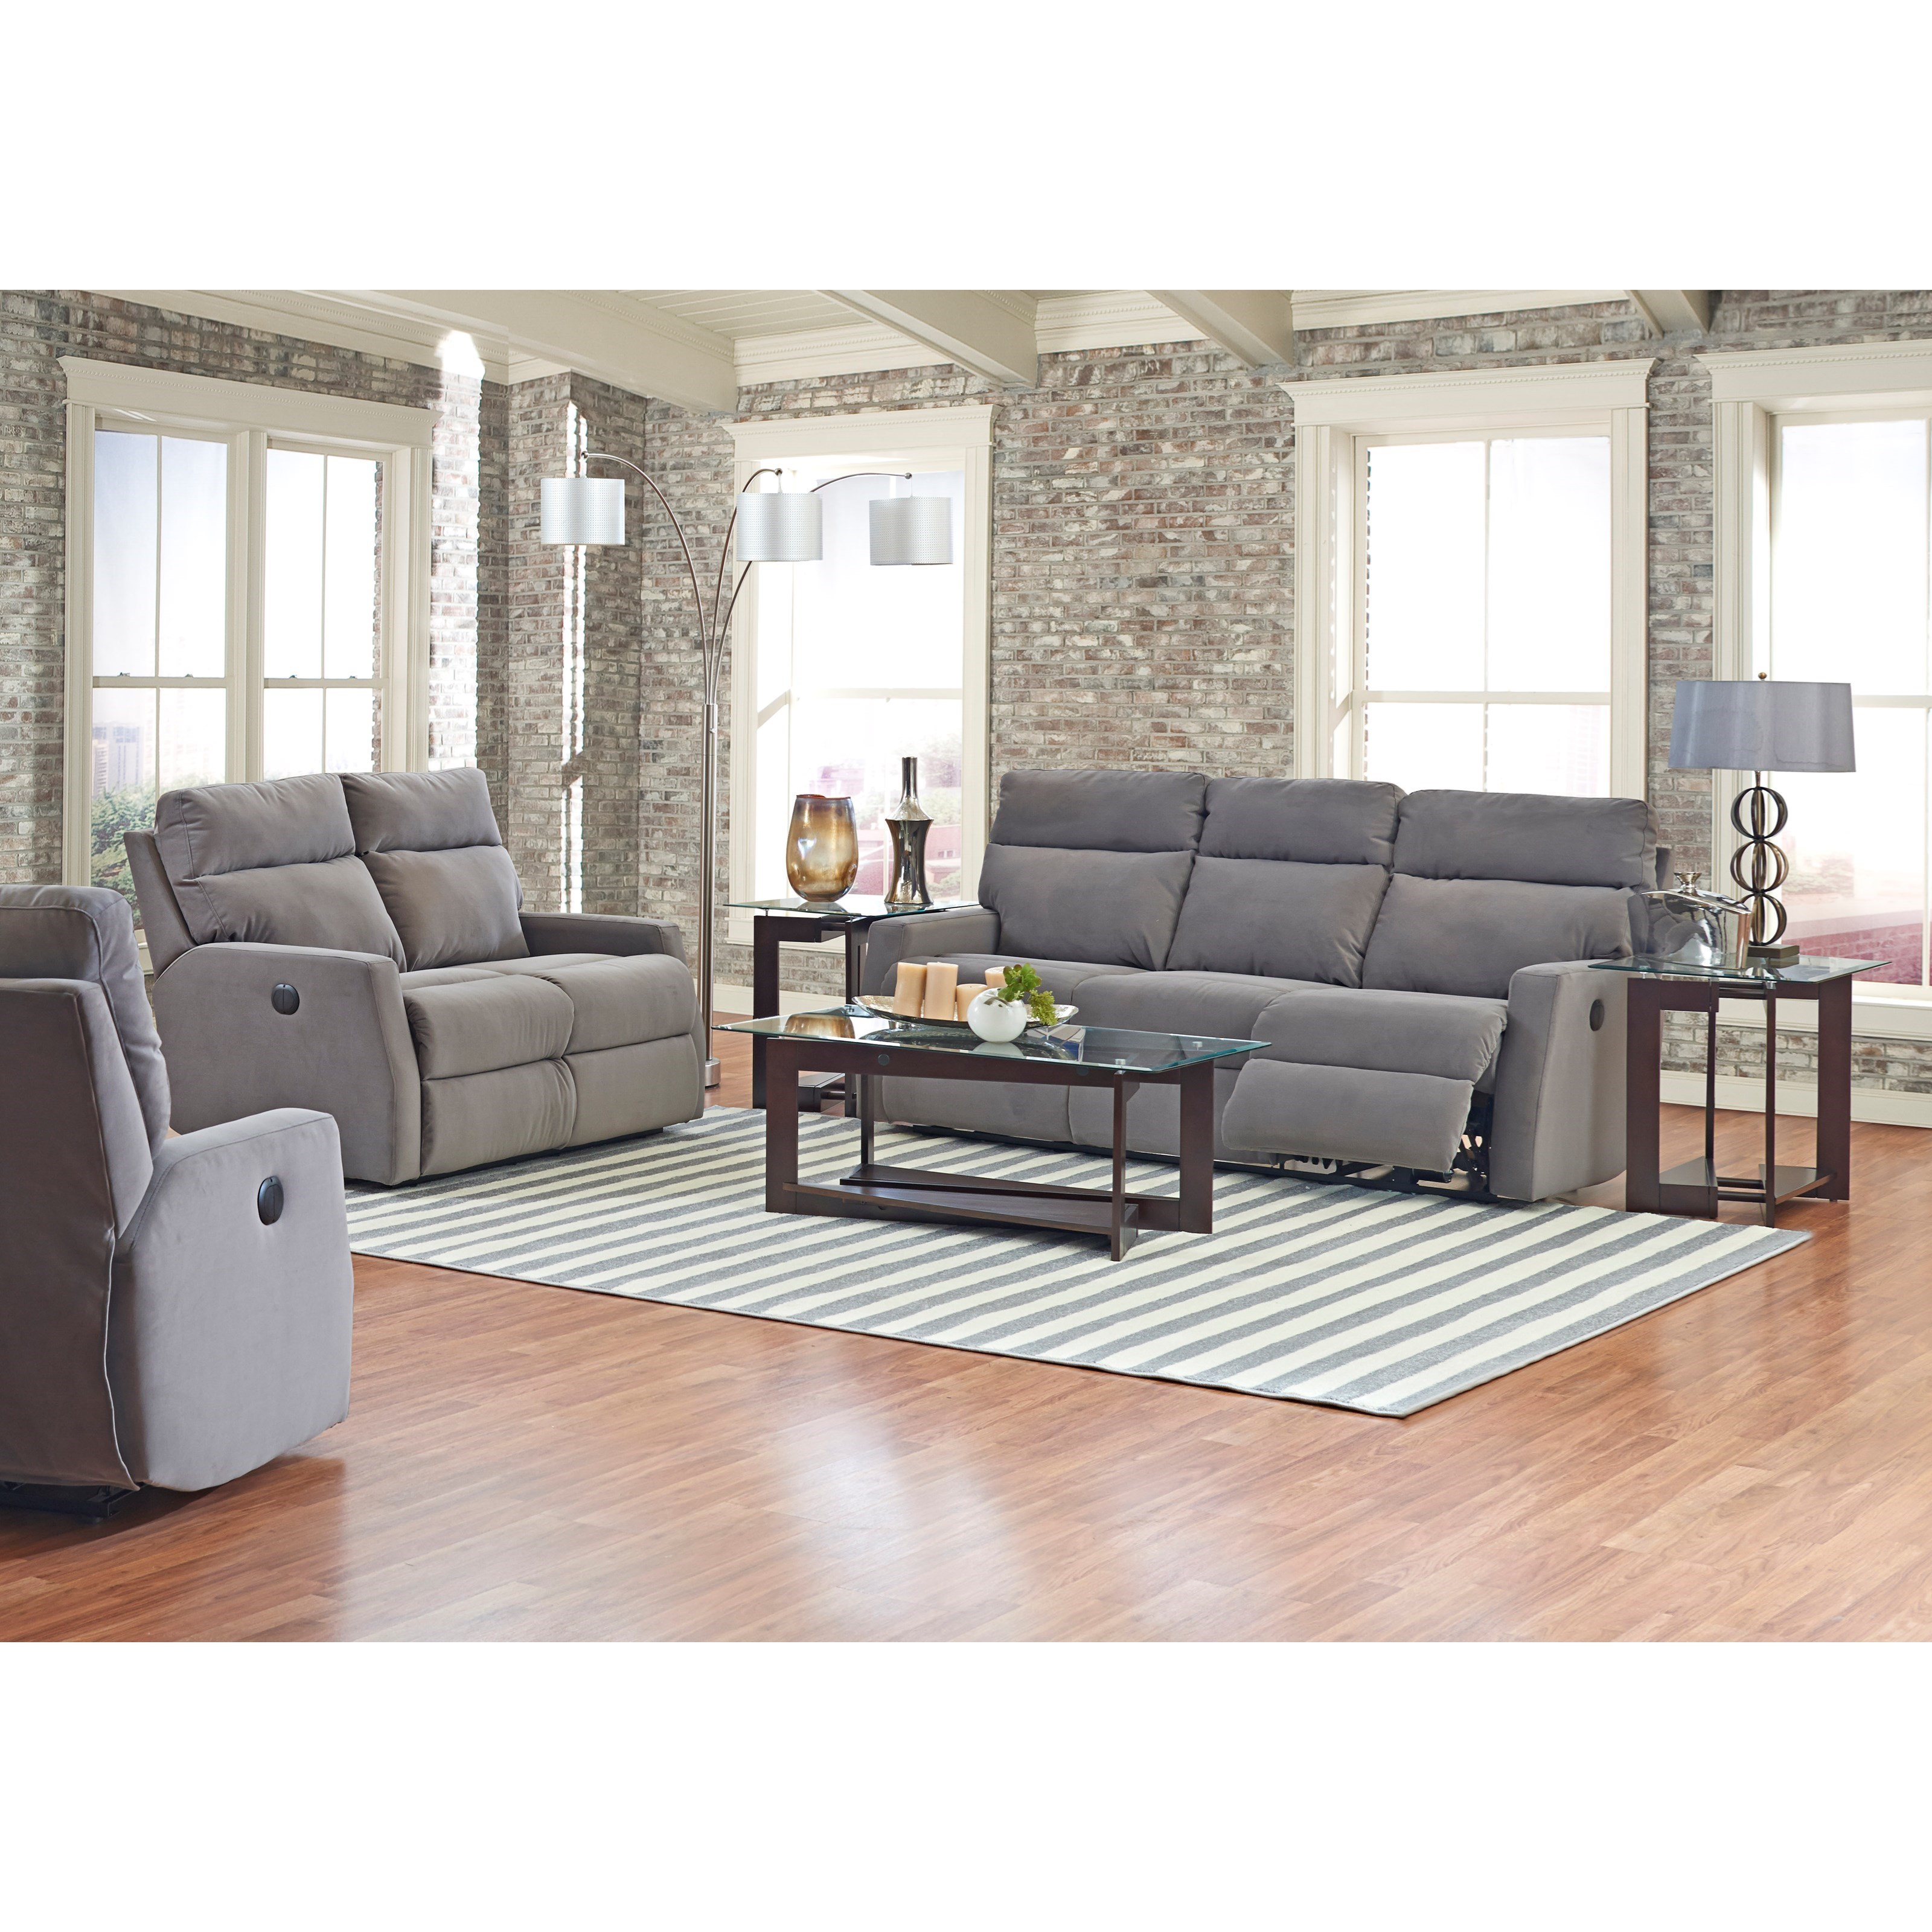 Amazon Living Room Furniture Clearance: Power Reclining Sofa With Soft Track Arms By Klaussner